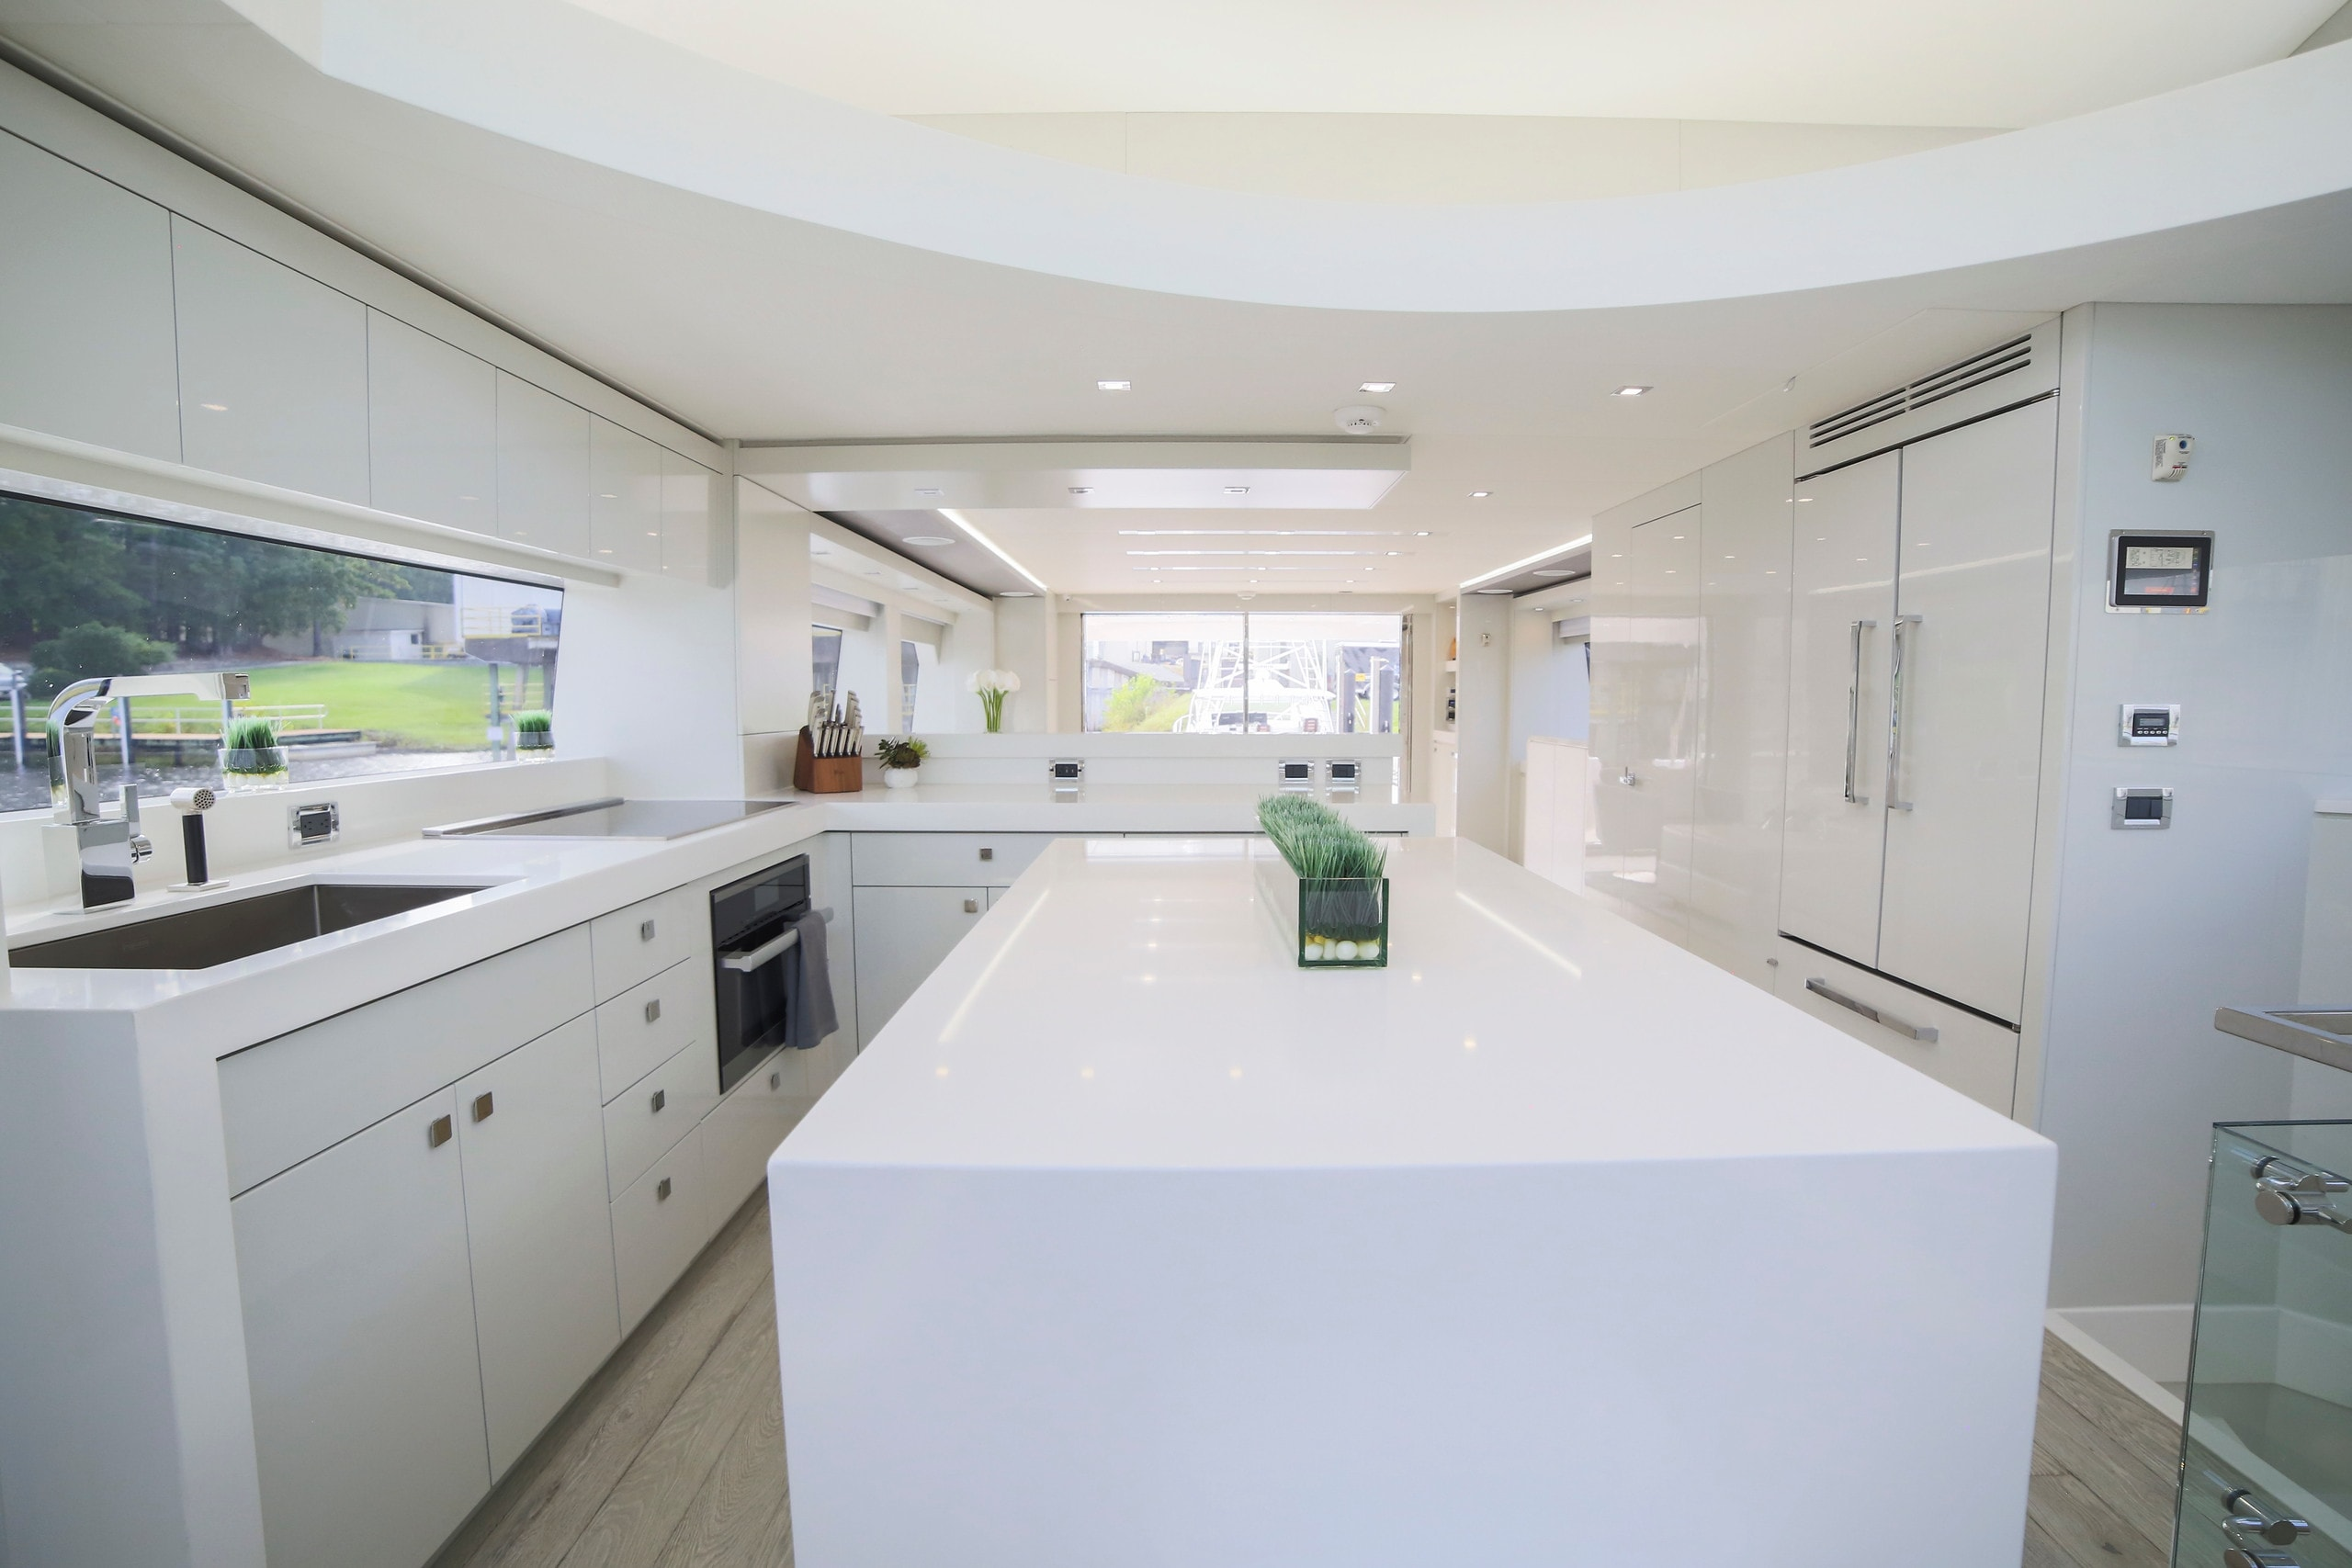 Hatteras M75 Panacera Galley White